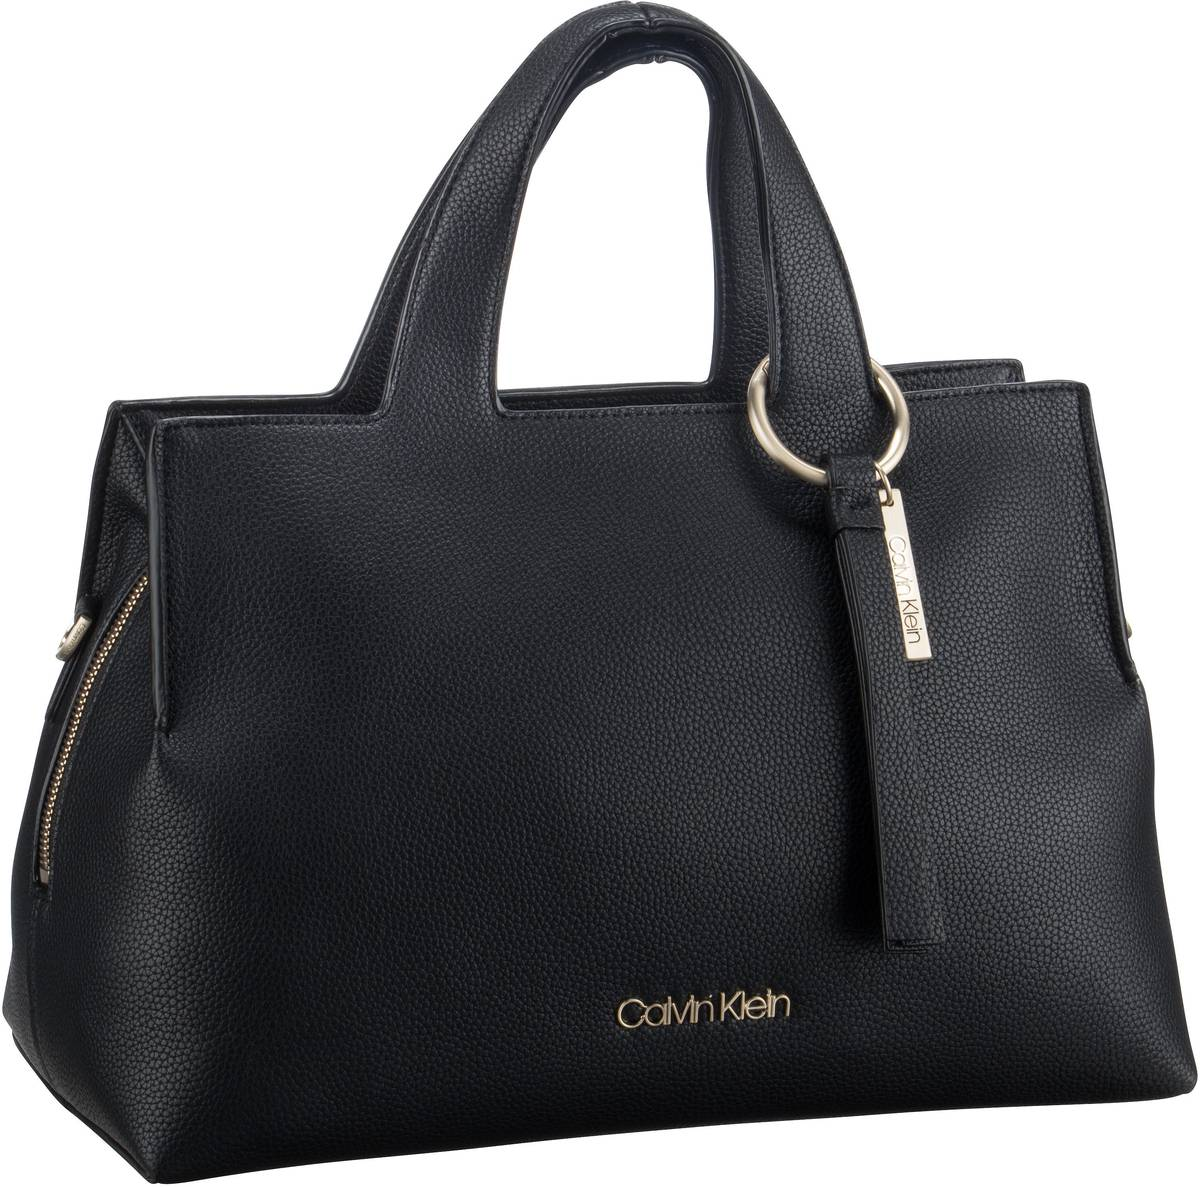 Handtasche Neat Large Tote Black